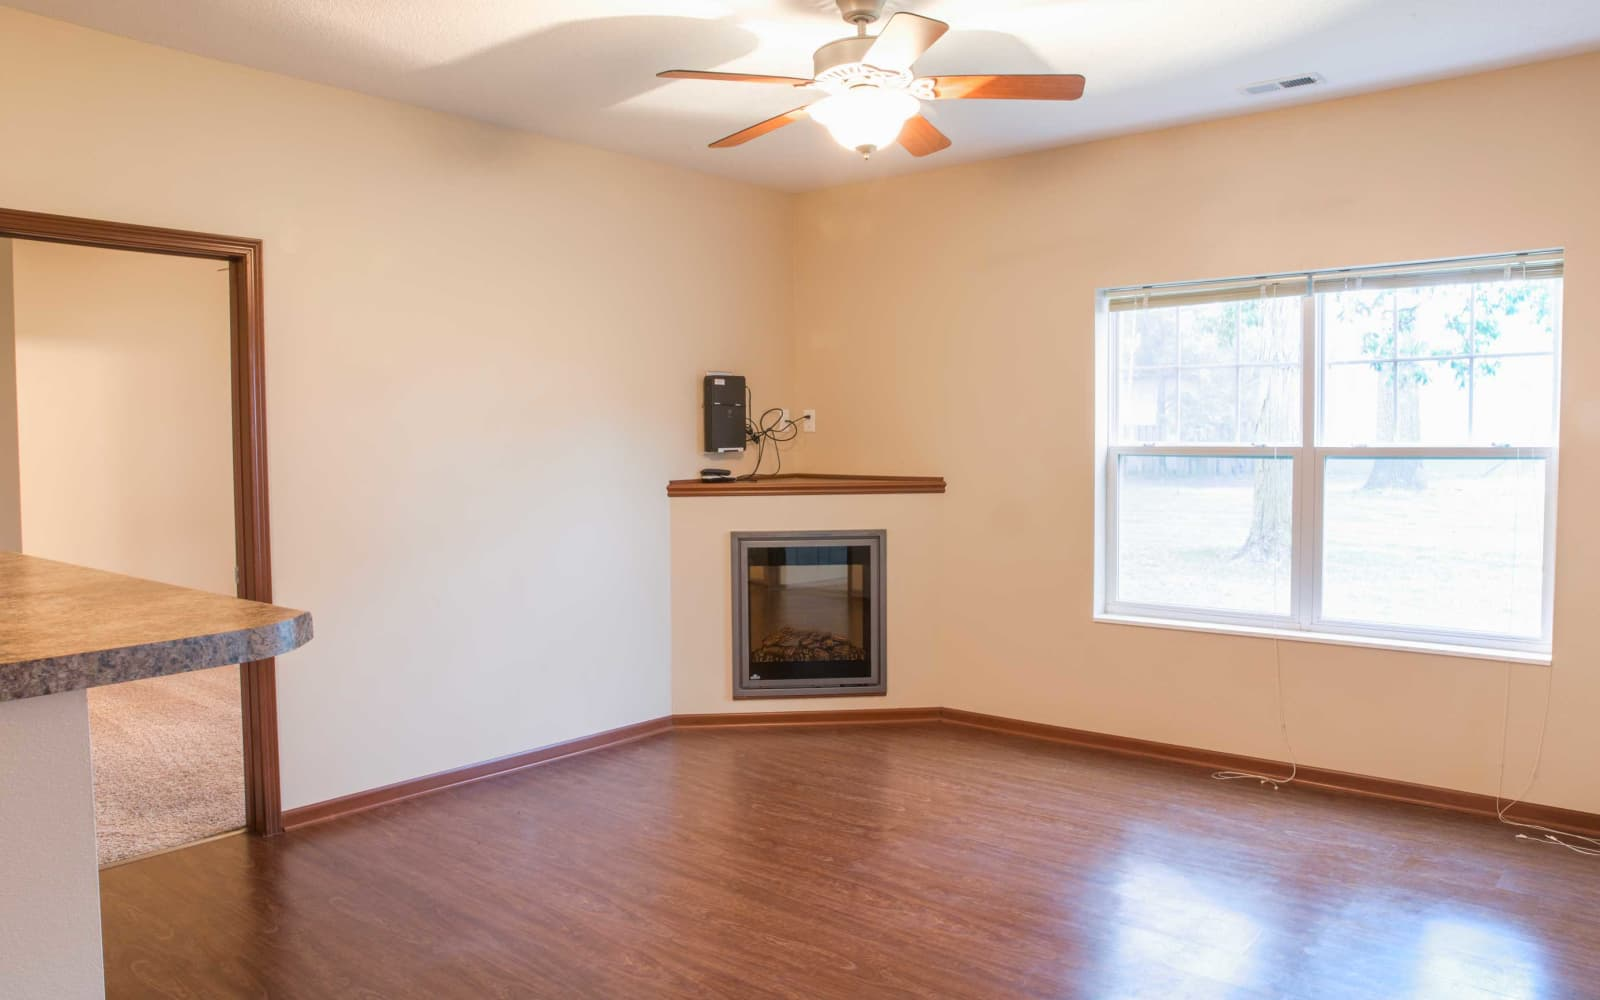 Living room with wood flooring and a fireplace at Westwood Village in Ames, Iowa